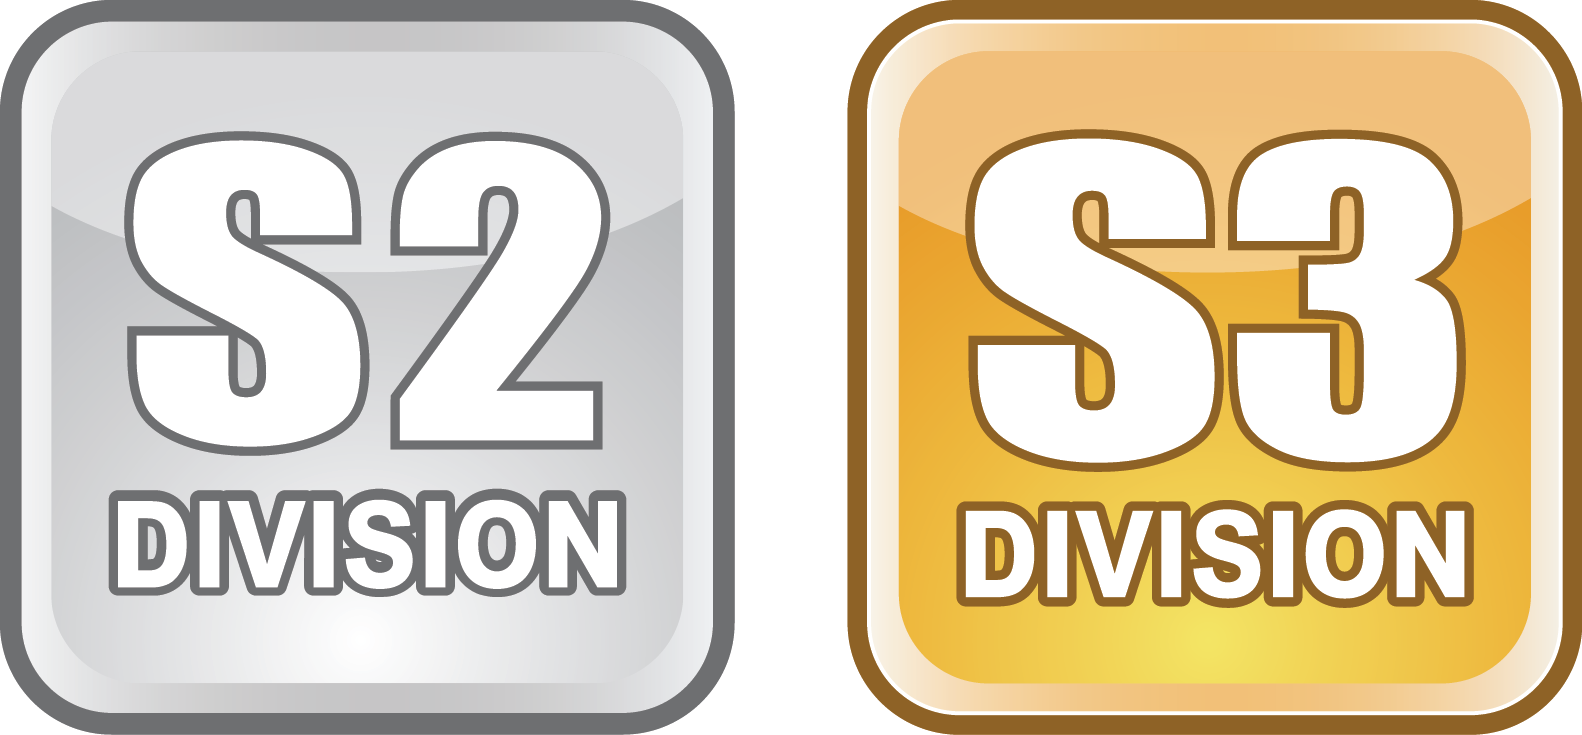 S2_S3_Division.png